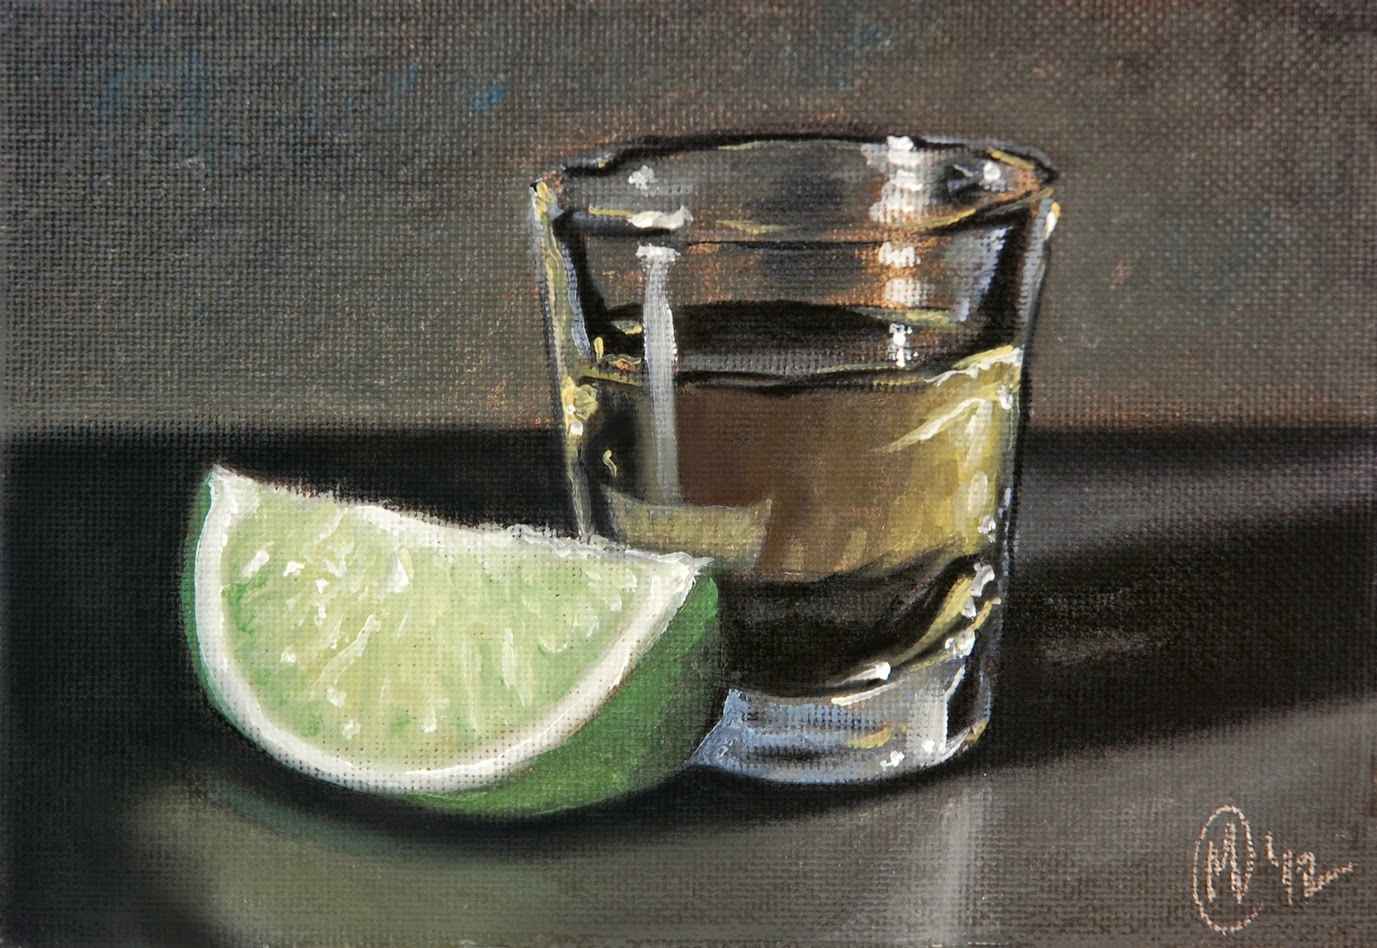 http://www.dailypaintworks.com/fineart/maurice-morgan/cinco-de-mayo/207960